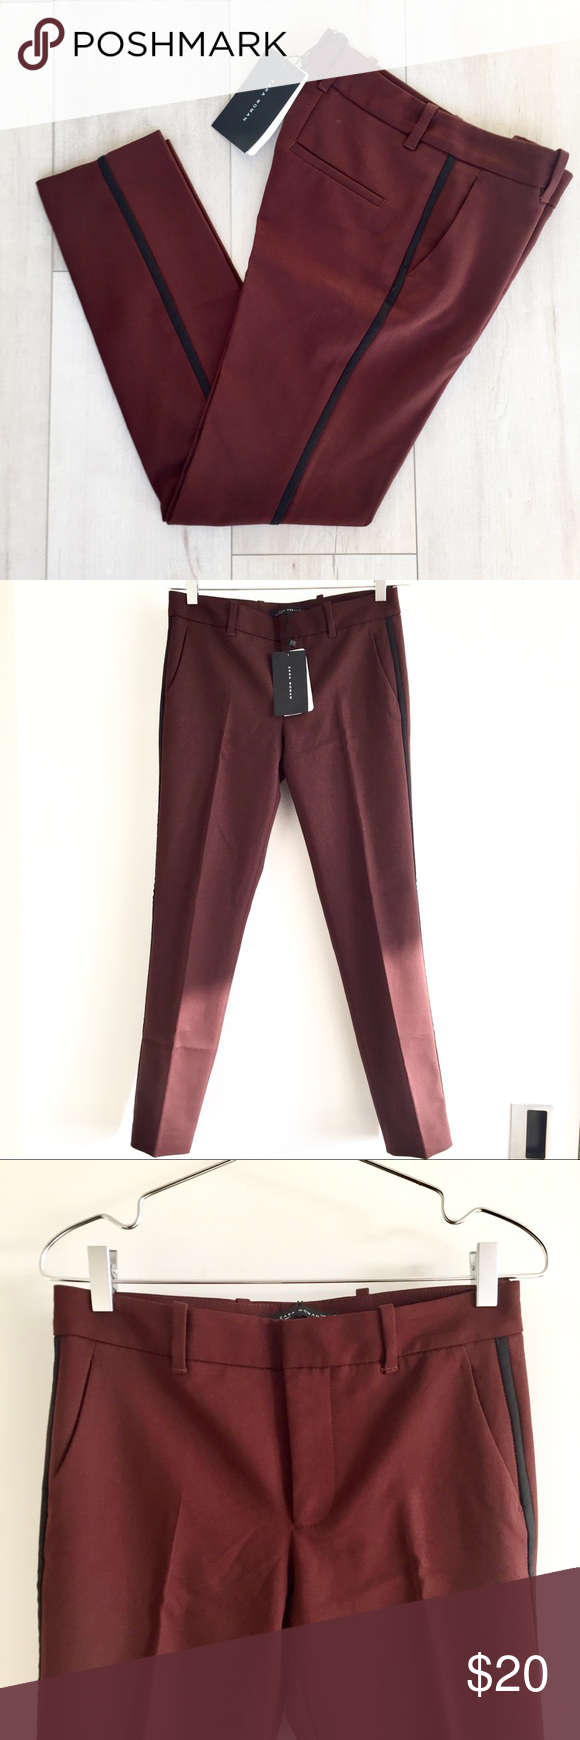 3d38b746 100% BNWT Zara Maroon Cropped Tuxedo Pant Cropped tuxedo pants are super  cute when styled